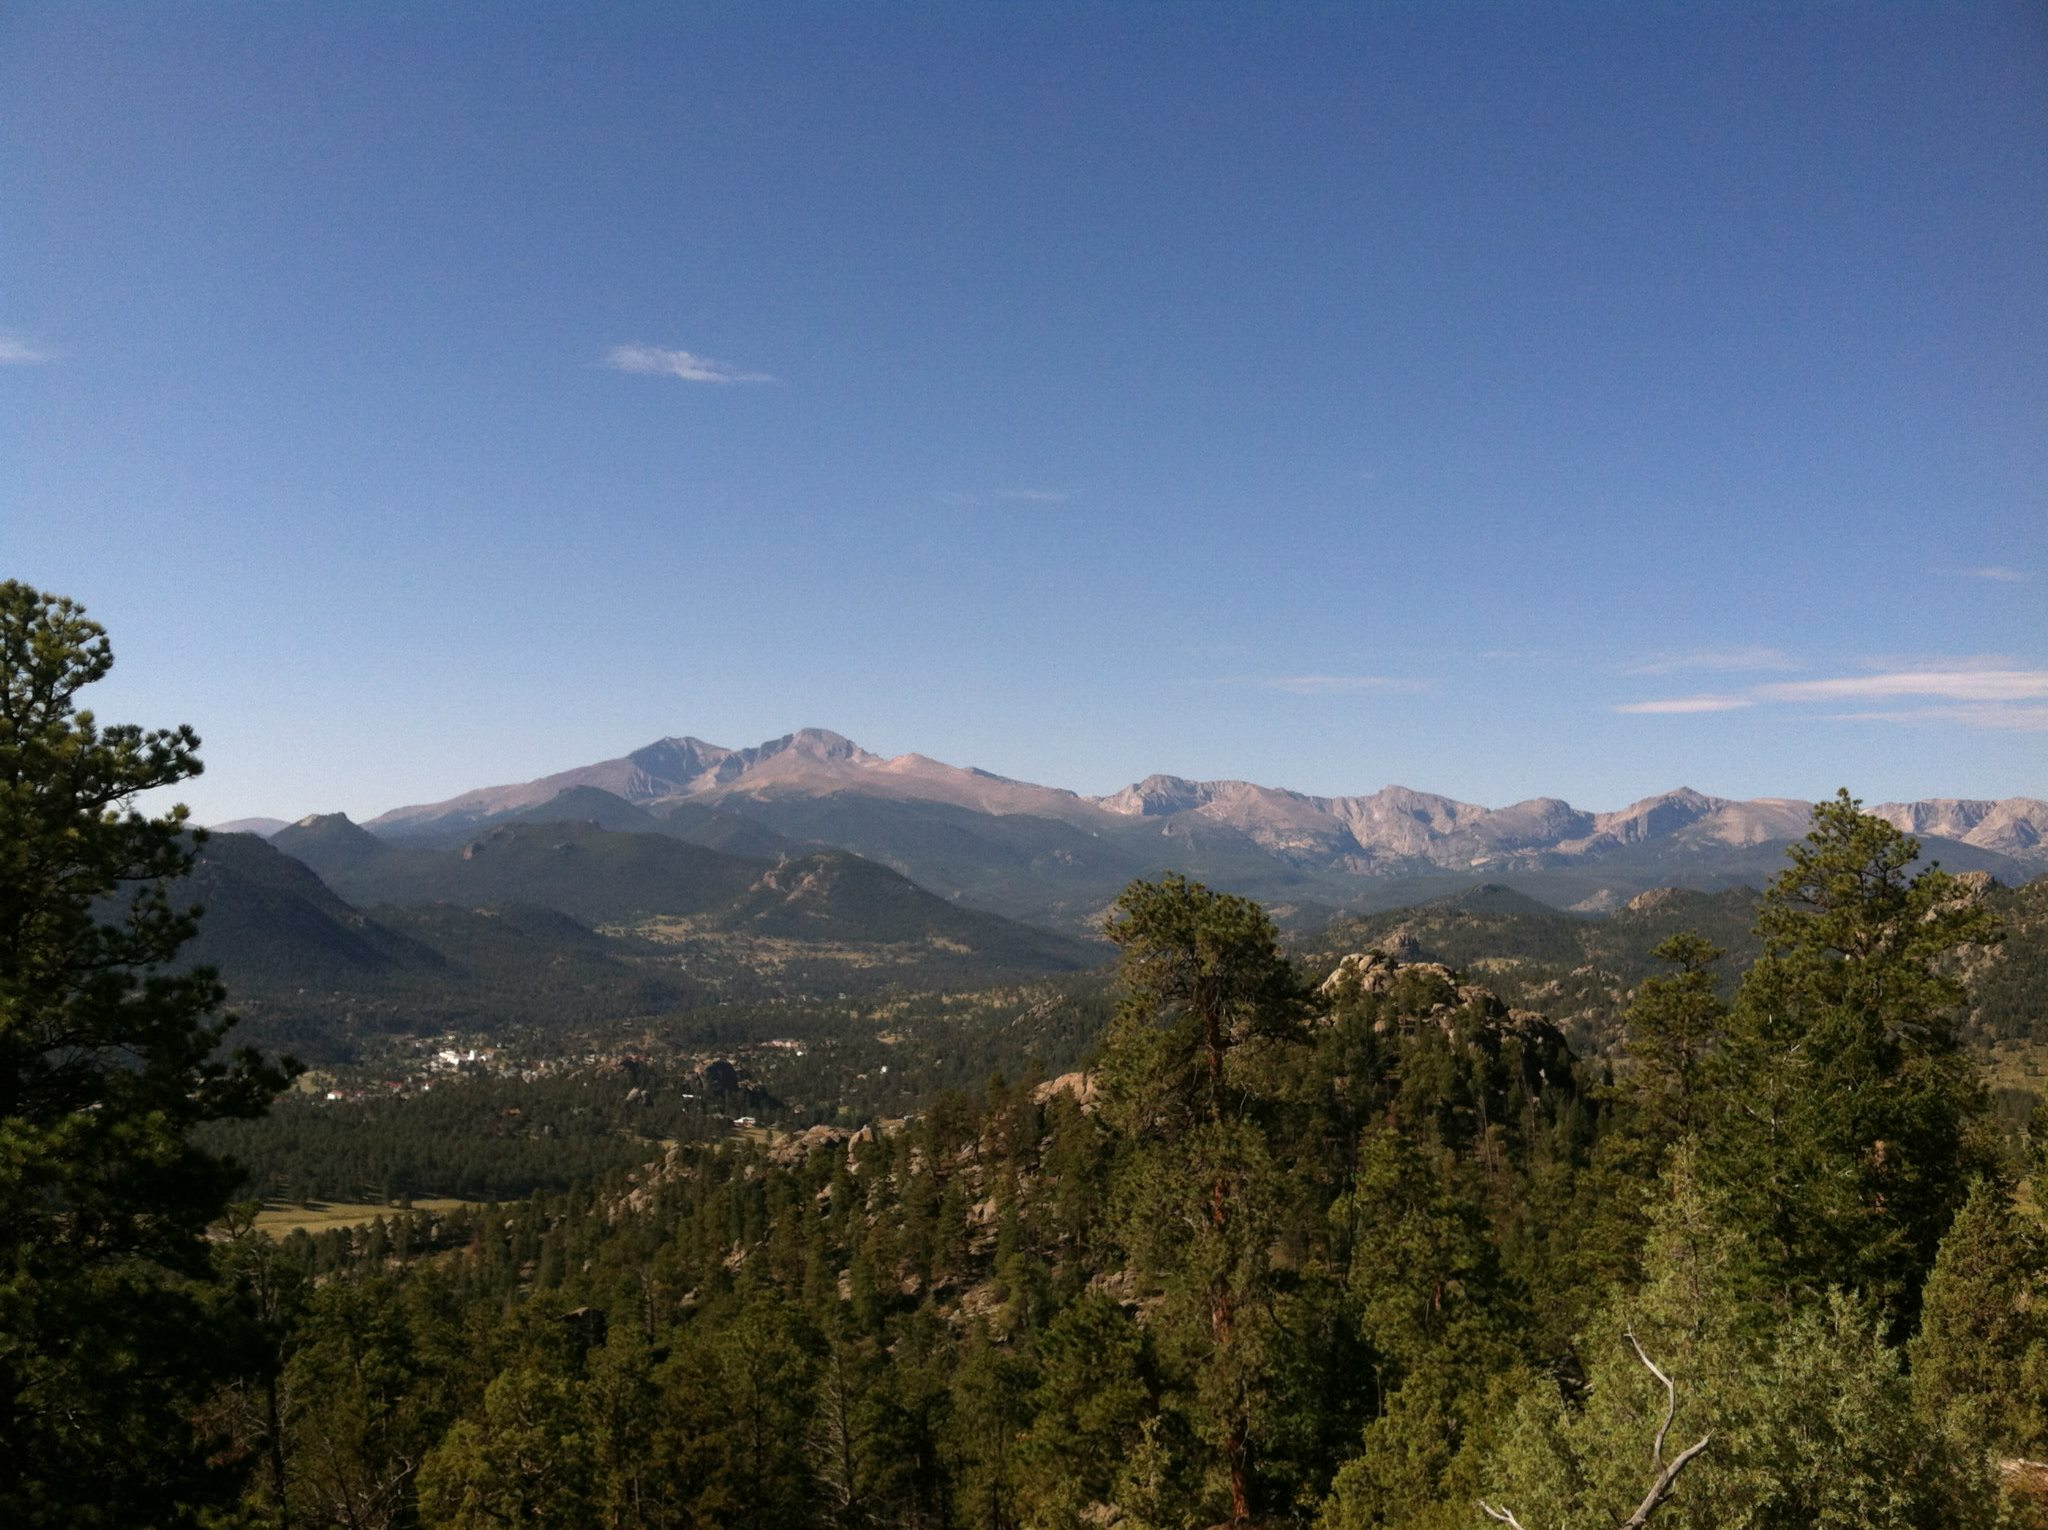 vista of the rocky mountains with pine trees in the foreground